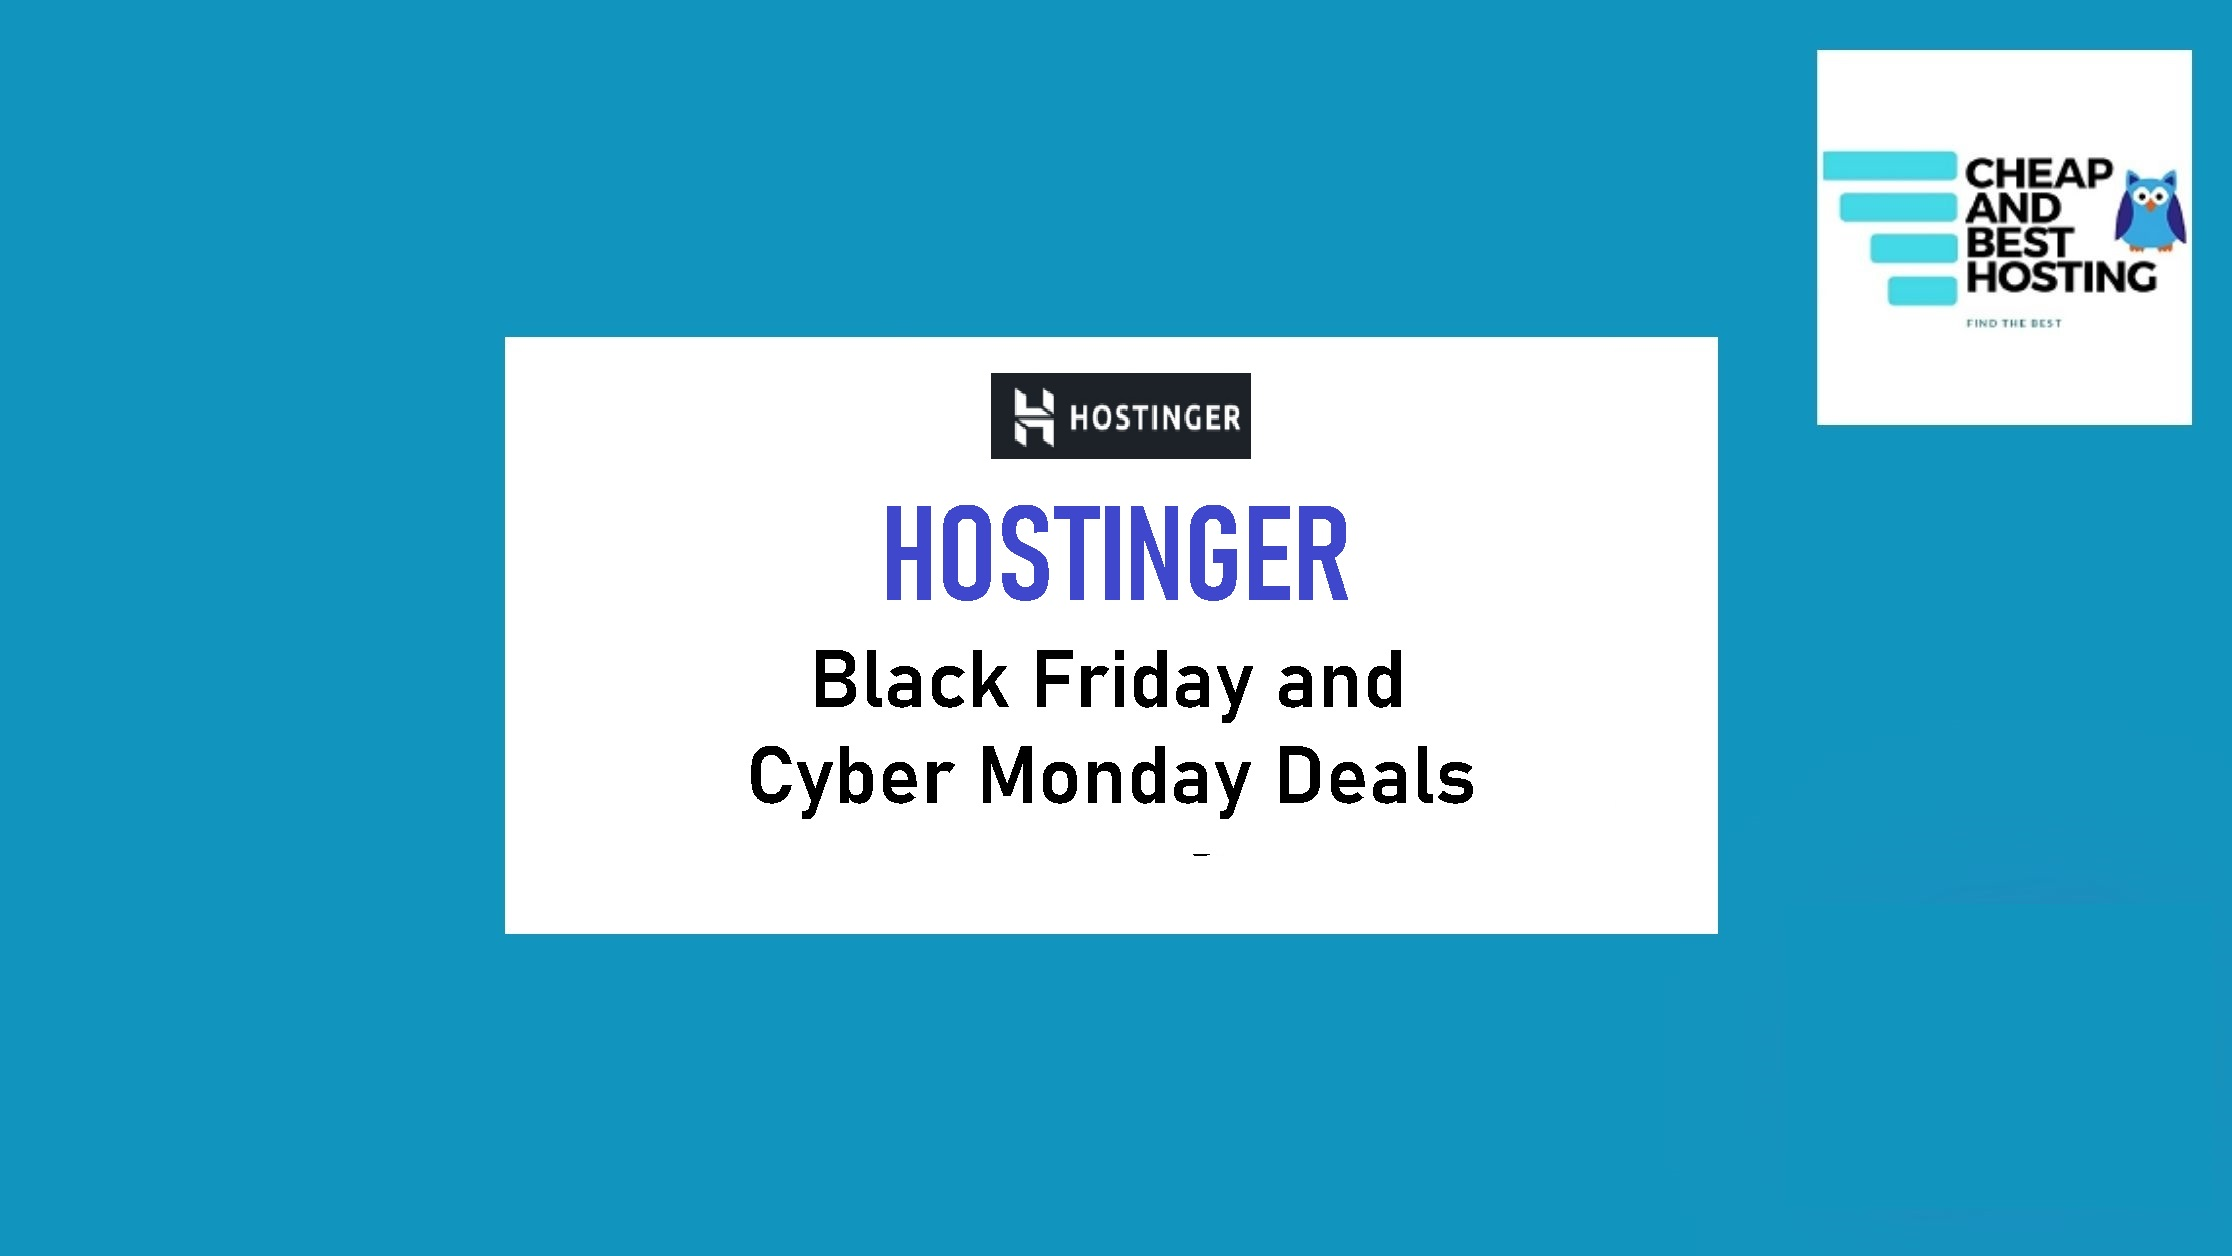 hostinger black friday 2020 deals and offers